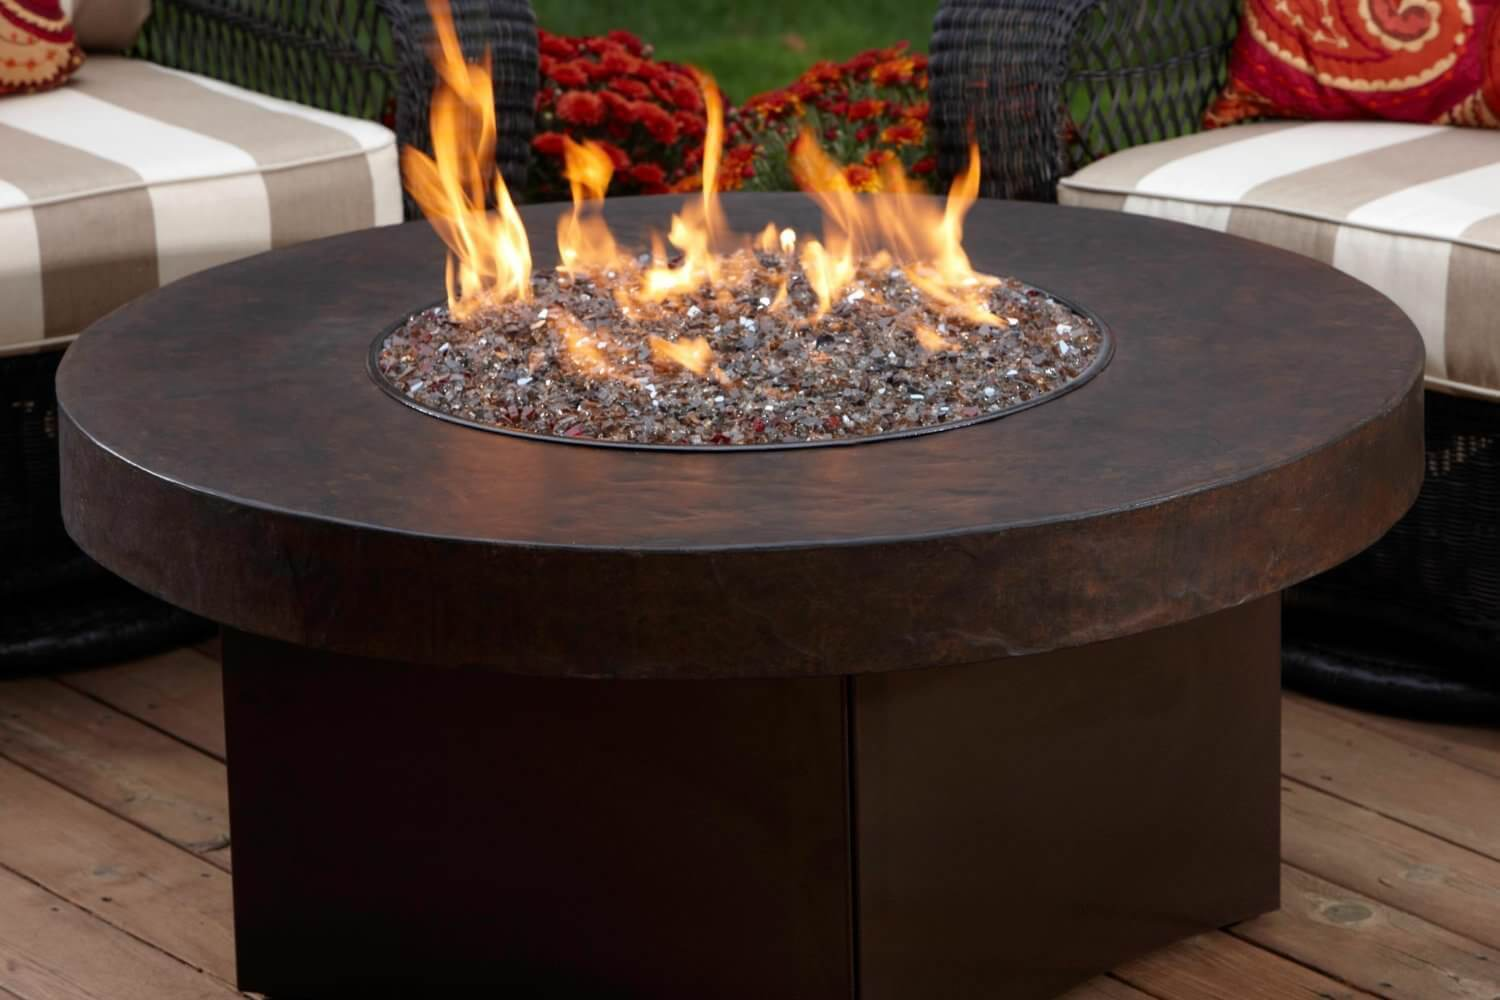 Patio Fire Pit Ideas 60 Backyard And Patio Fire Pit Ideas Different Types With Photo